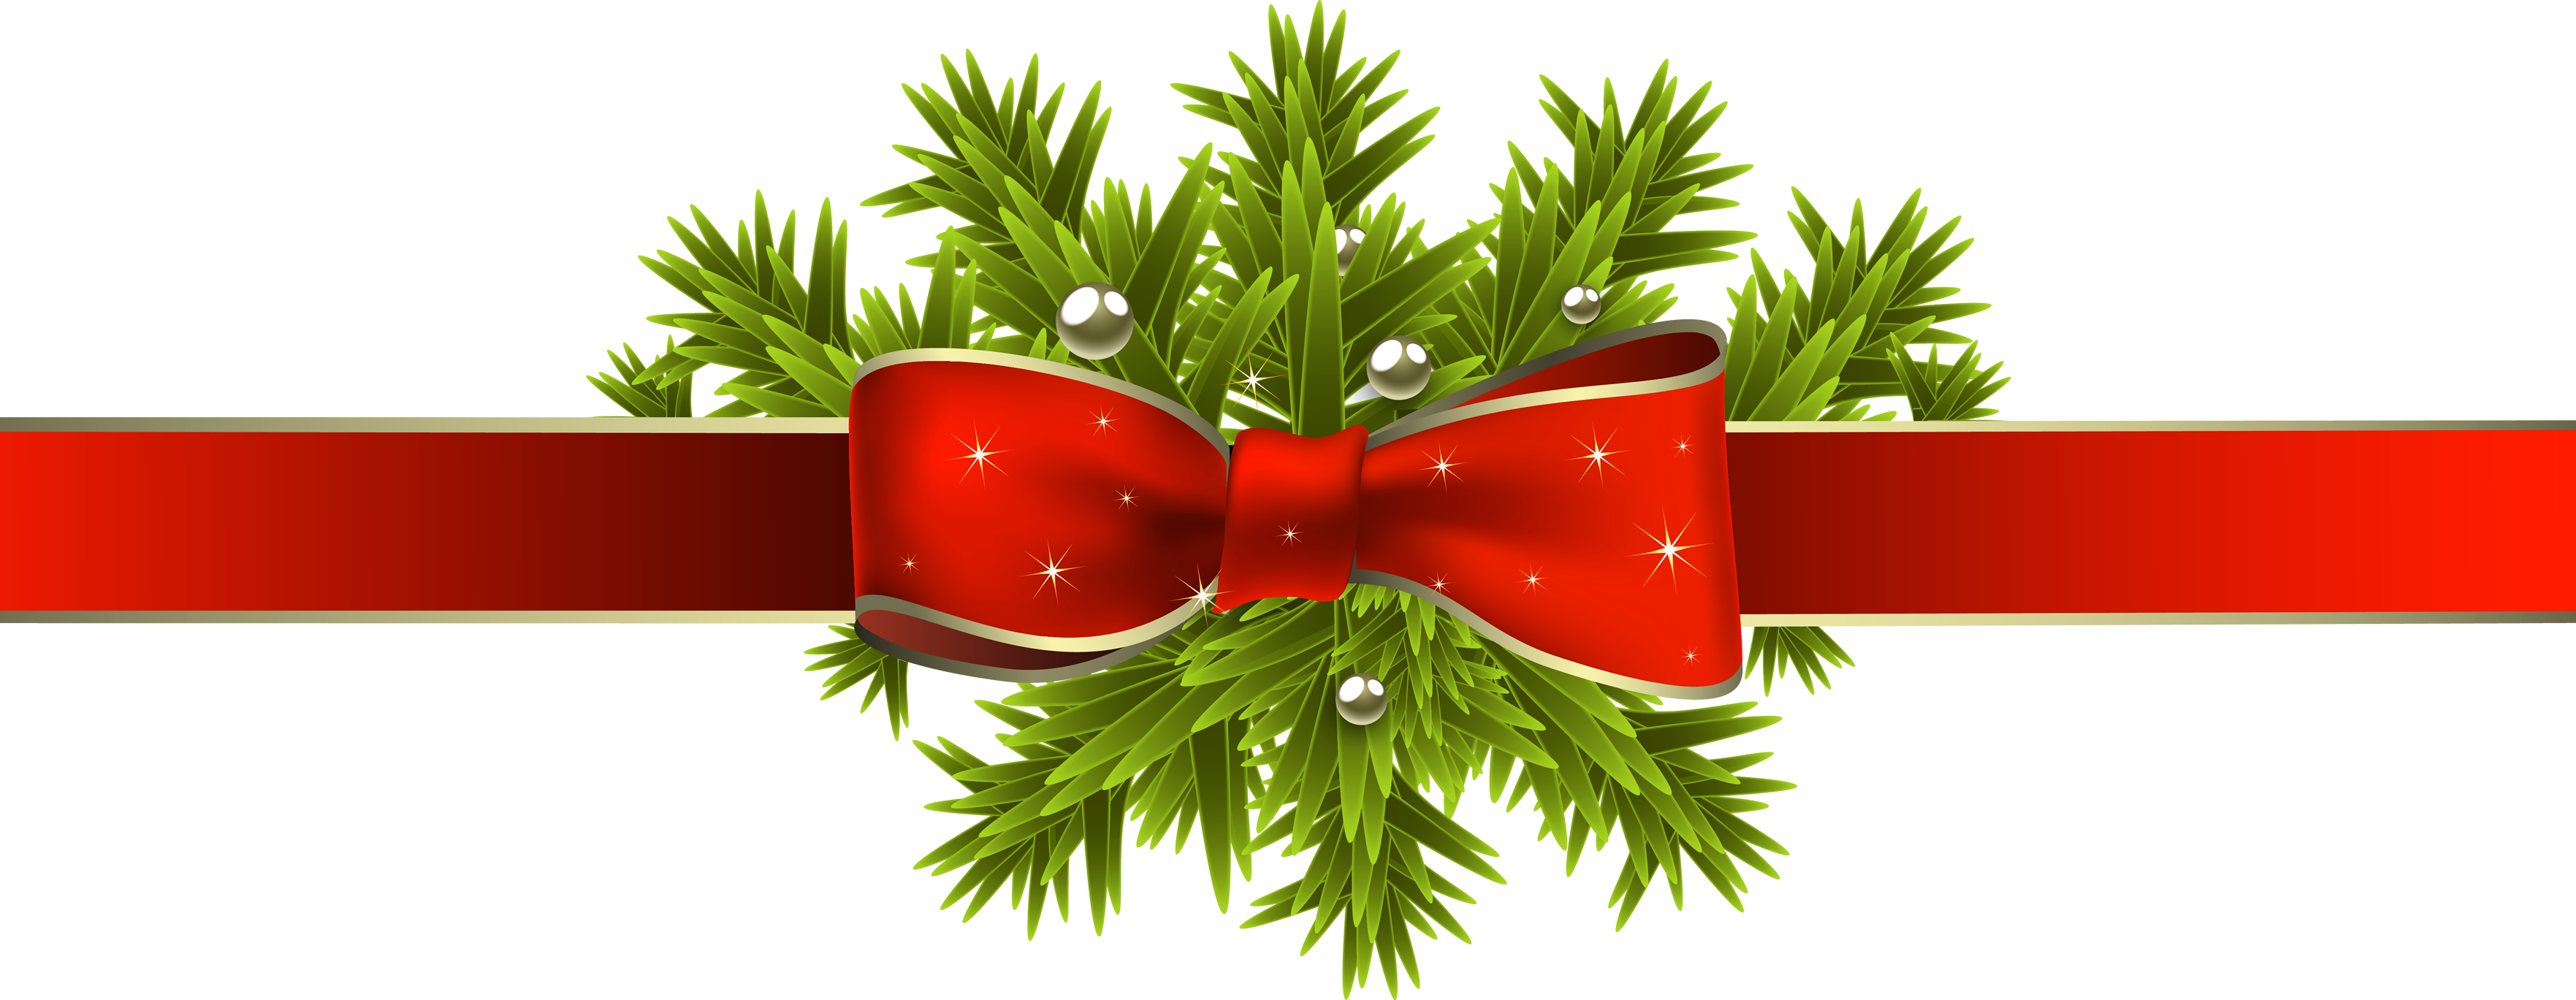 Tinsle clipart banner transparent library Clipart christmas tinsel, Clipart christmas tinsel ... banner transparent library